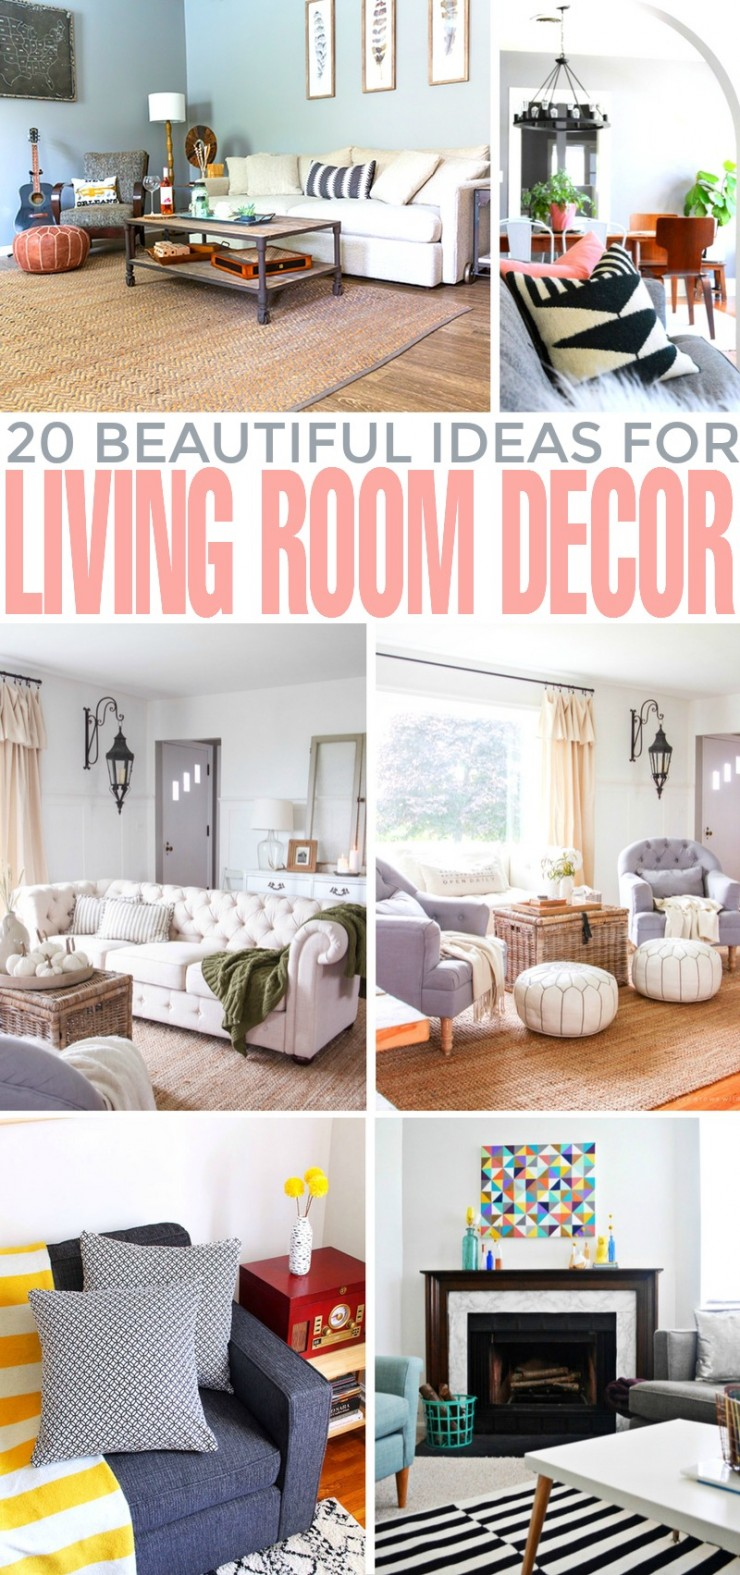 A couple of days ago I was looking for some inspiration online and I came across some beautiful and unique living room decorating ideas that can maximize your space and bring more light into your home.